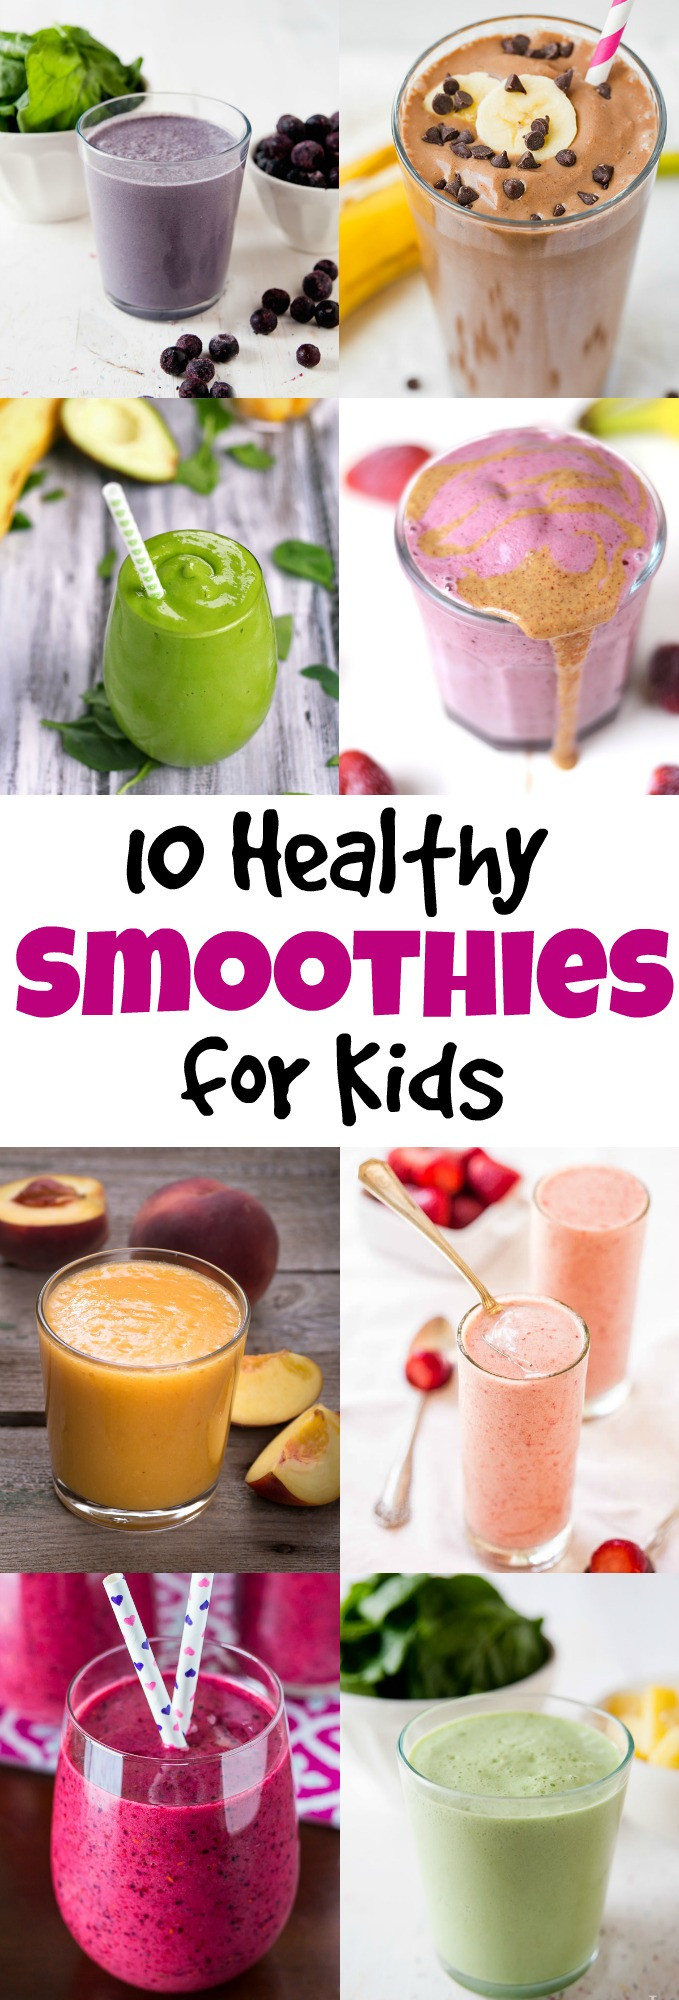 Healthy Breakfast Smoothies For Kids  10 Healthy Smoothies for Kids MOMables Good Food